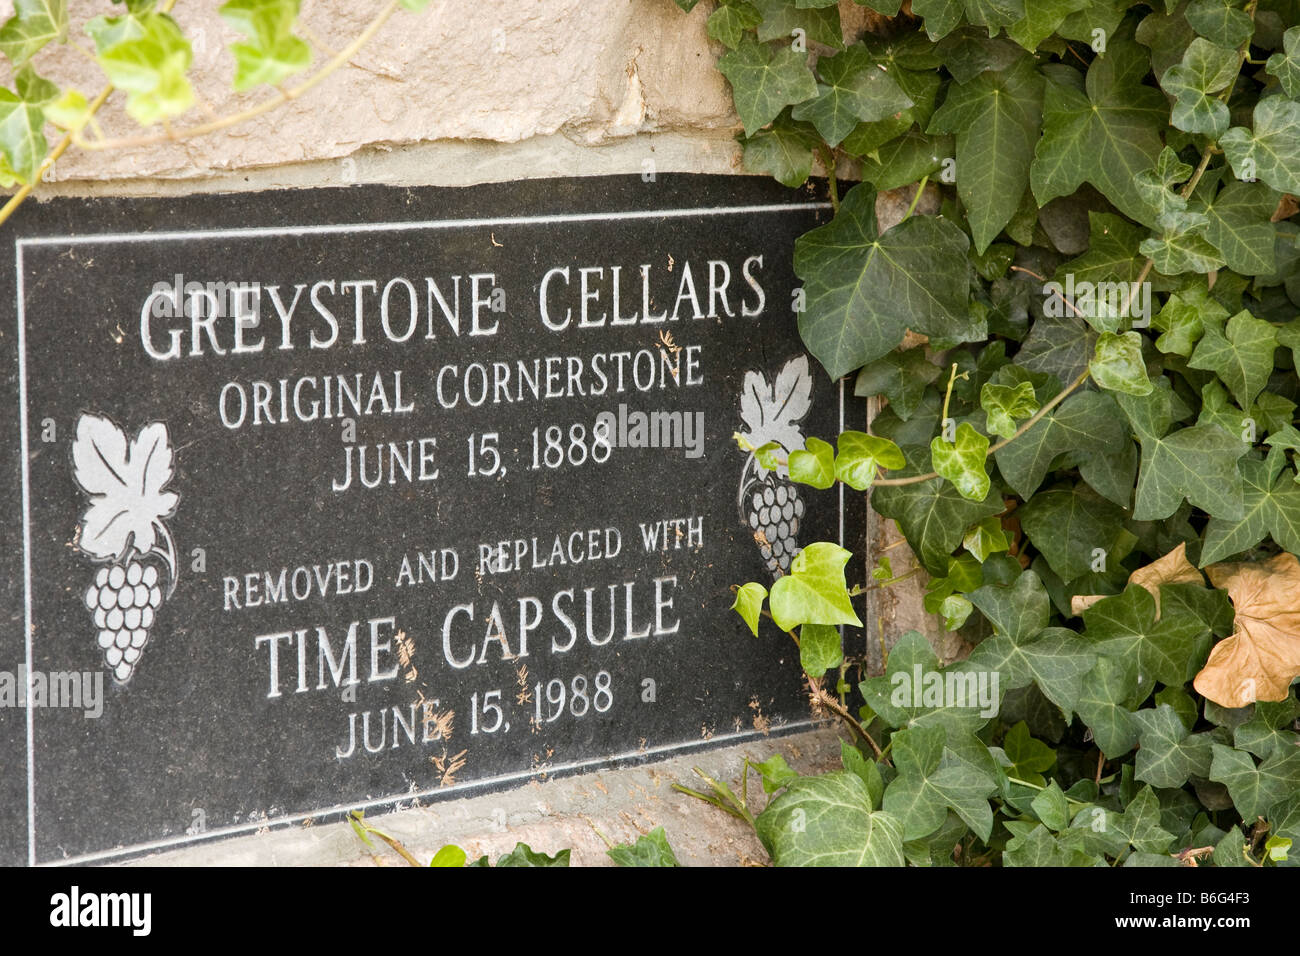 Greystone Cellars time capsule marker at the Cullinary Institute of America Stock Photo